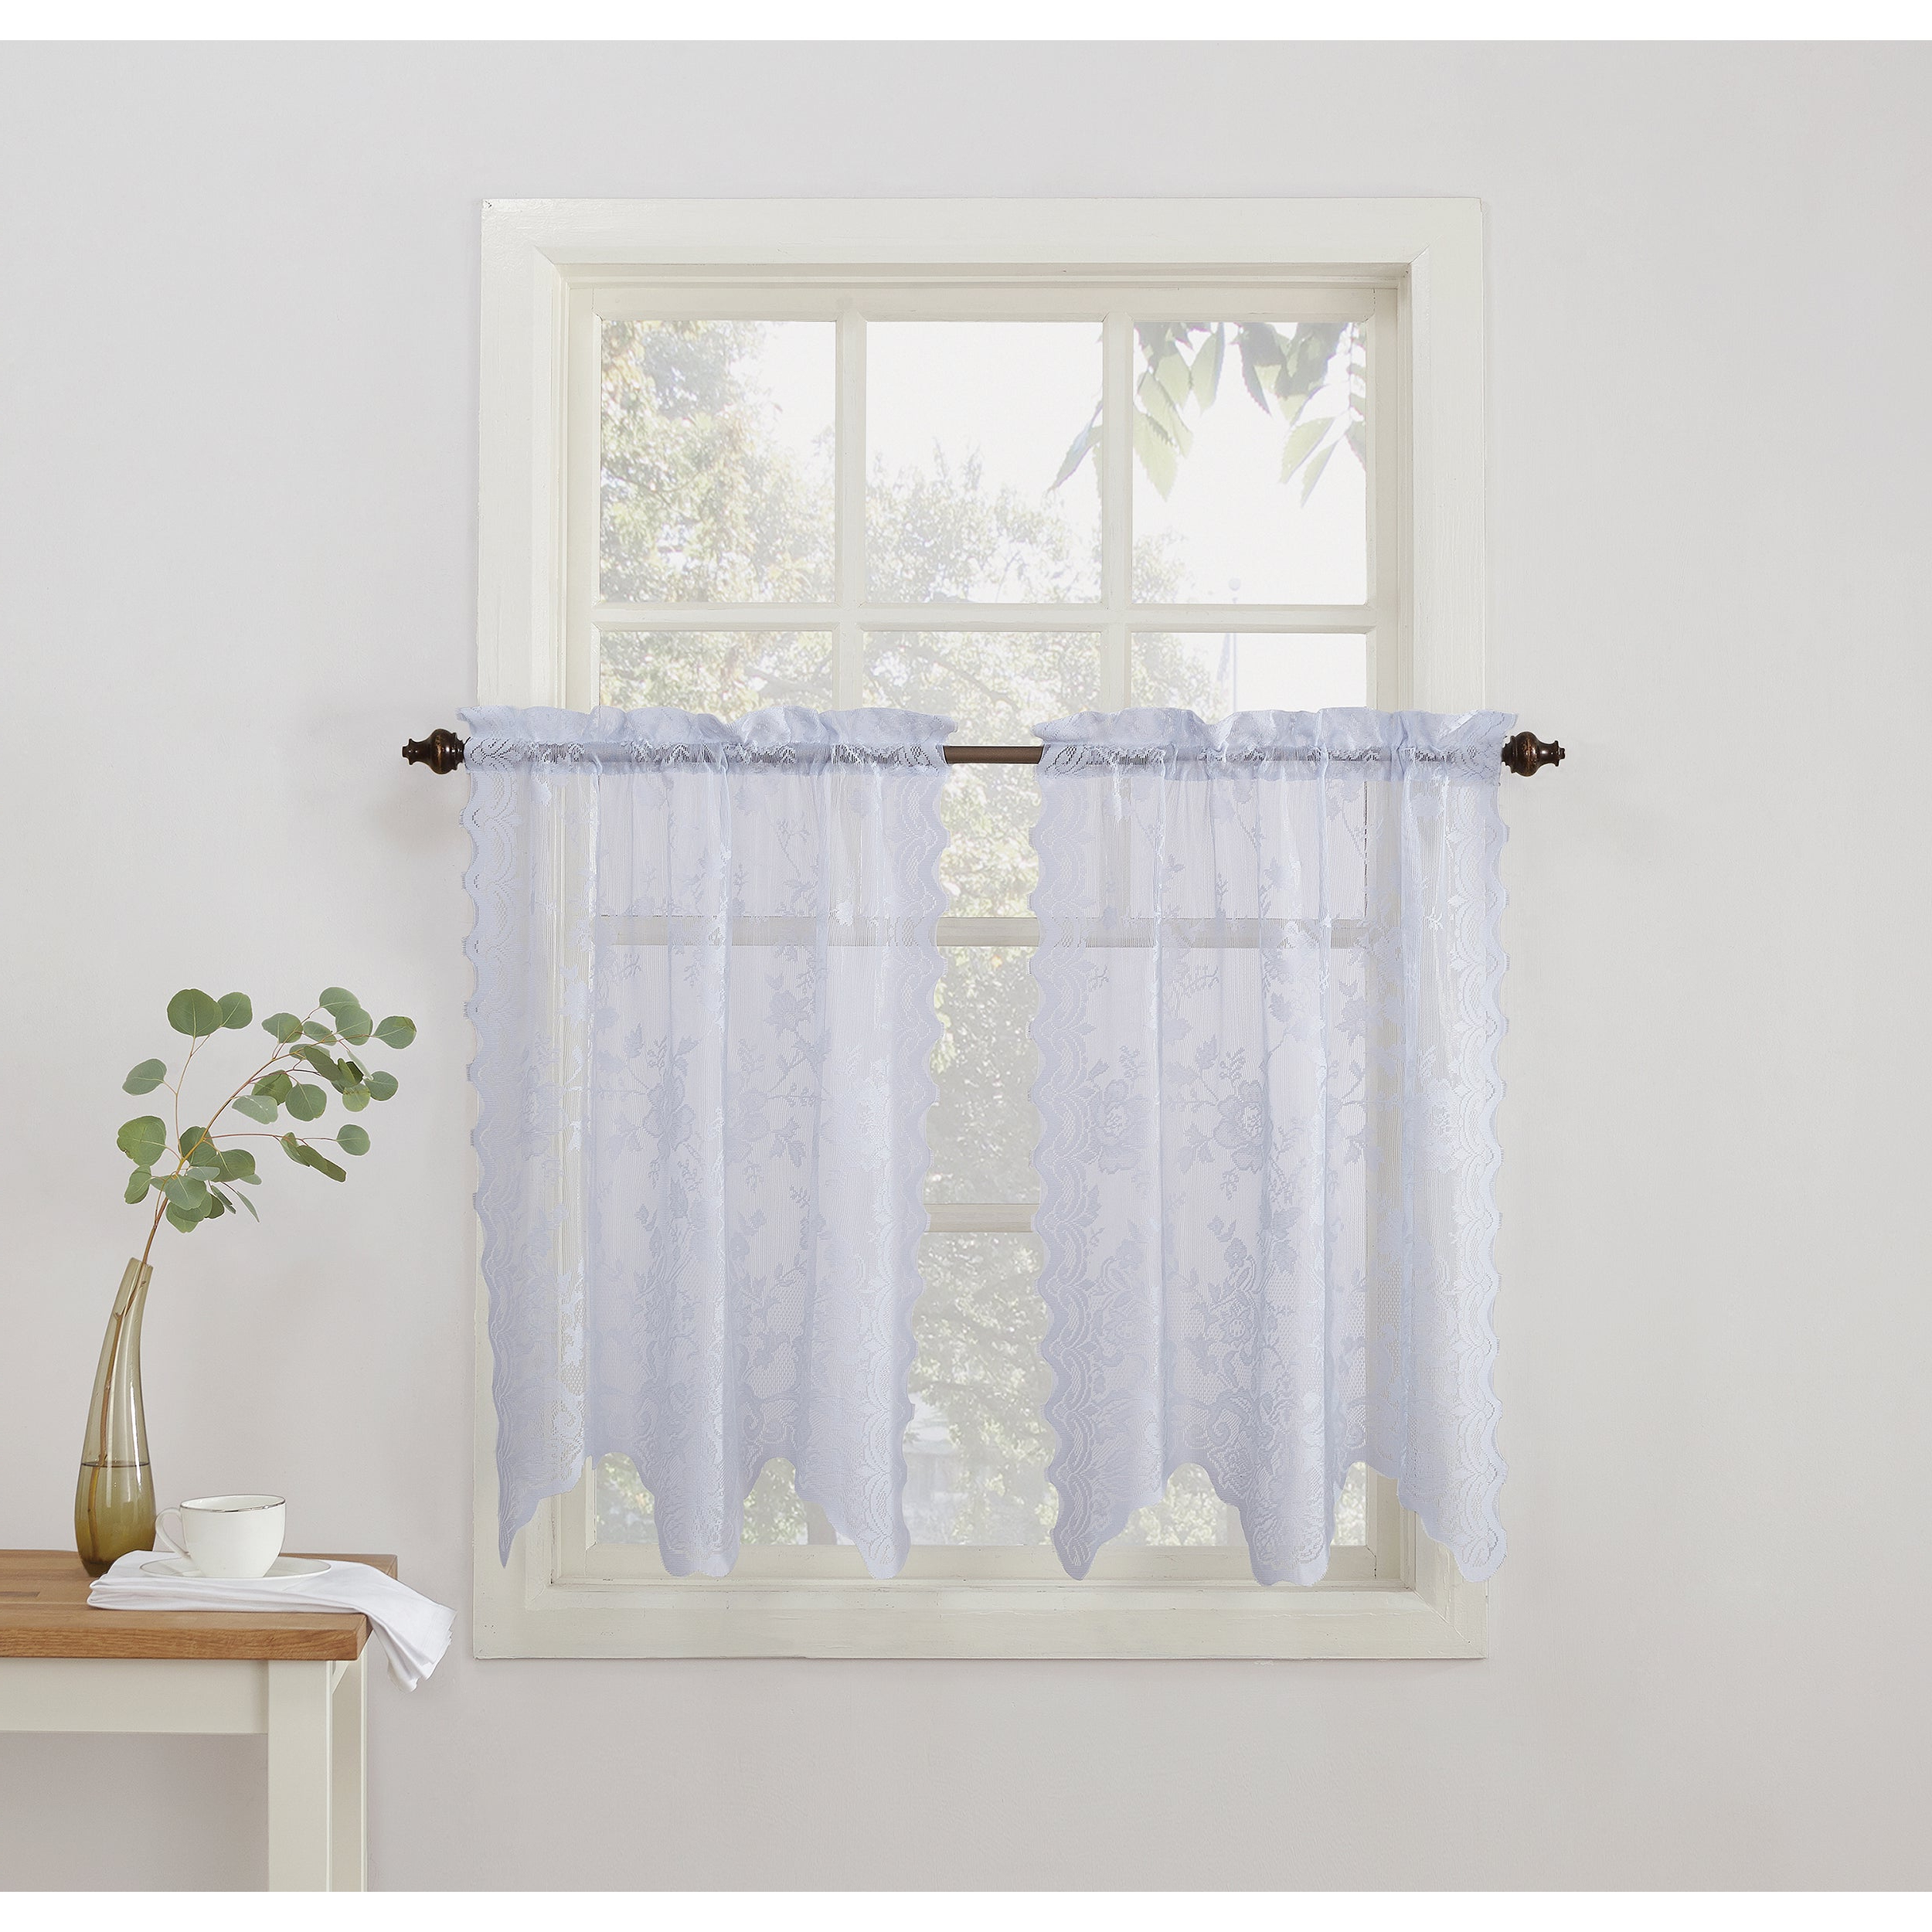 Famous No. 918 Alison Sheer Lace Elongated Kitchen Curtain Tier Pair Inside White Tone On Tone Raised Microcheck Semisheer Window Curtain Pieces (Gallery 14 of 20)